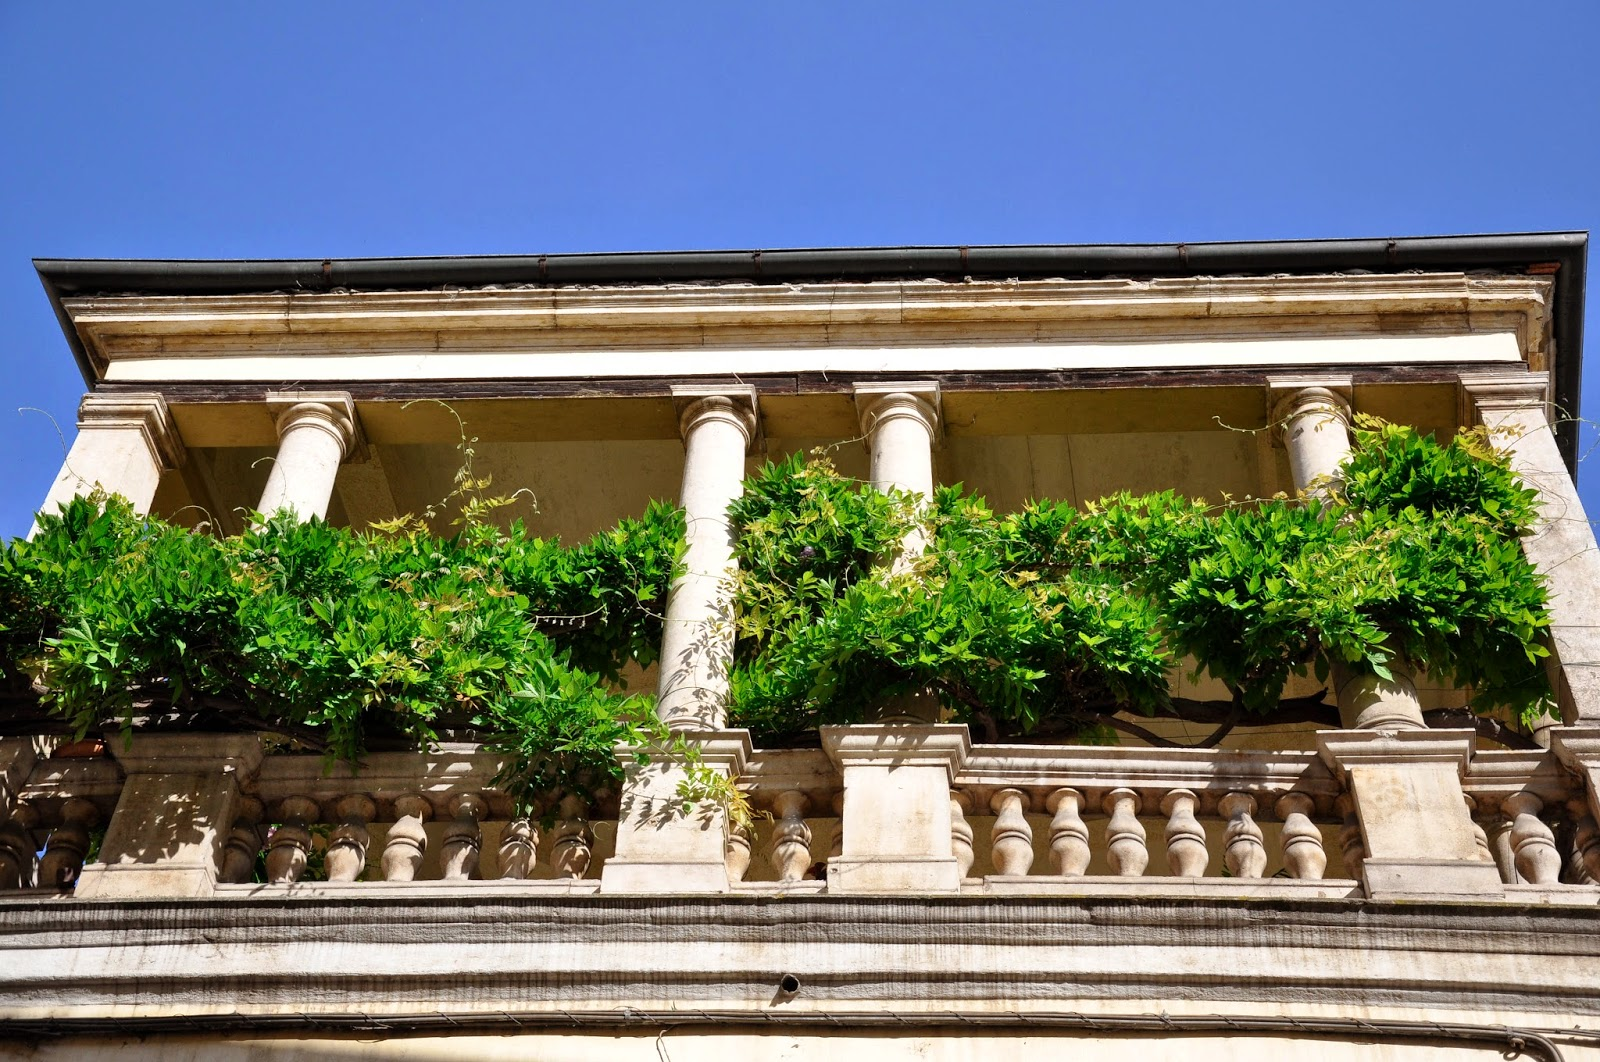 A loggia draped in greenery in Vicenza, Italy